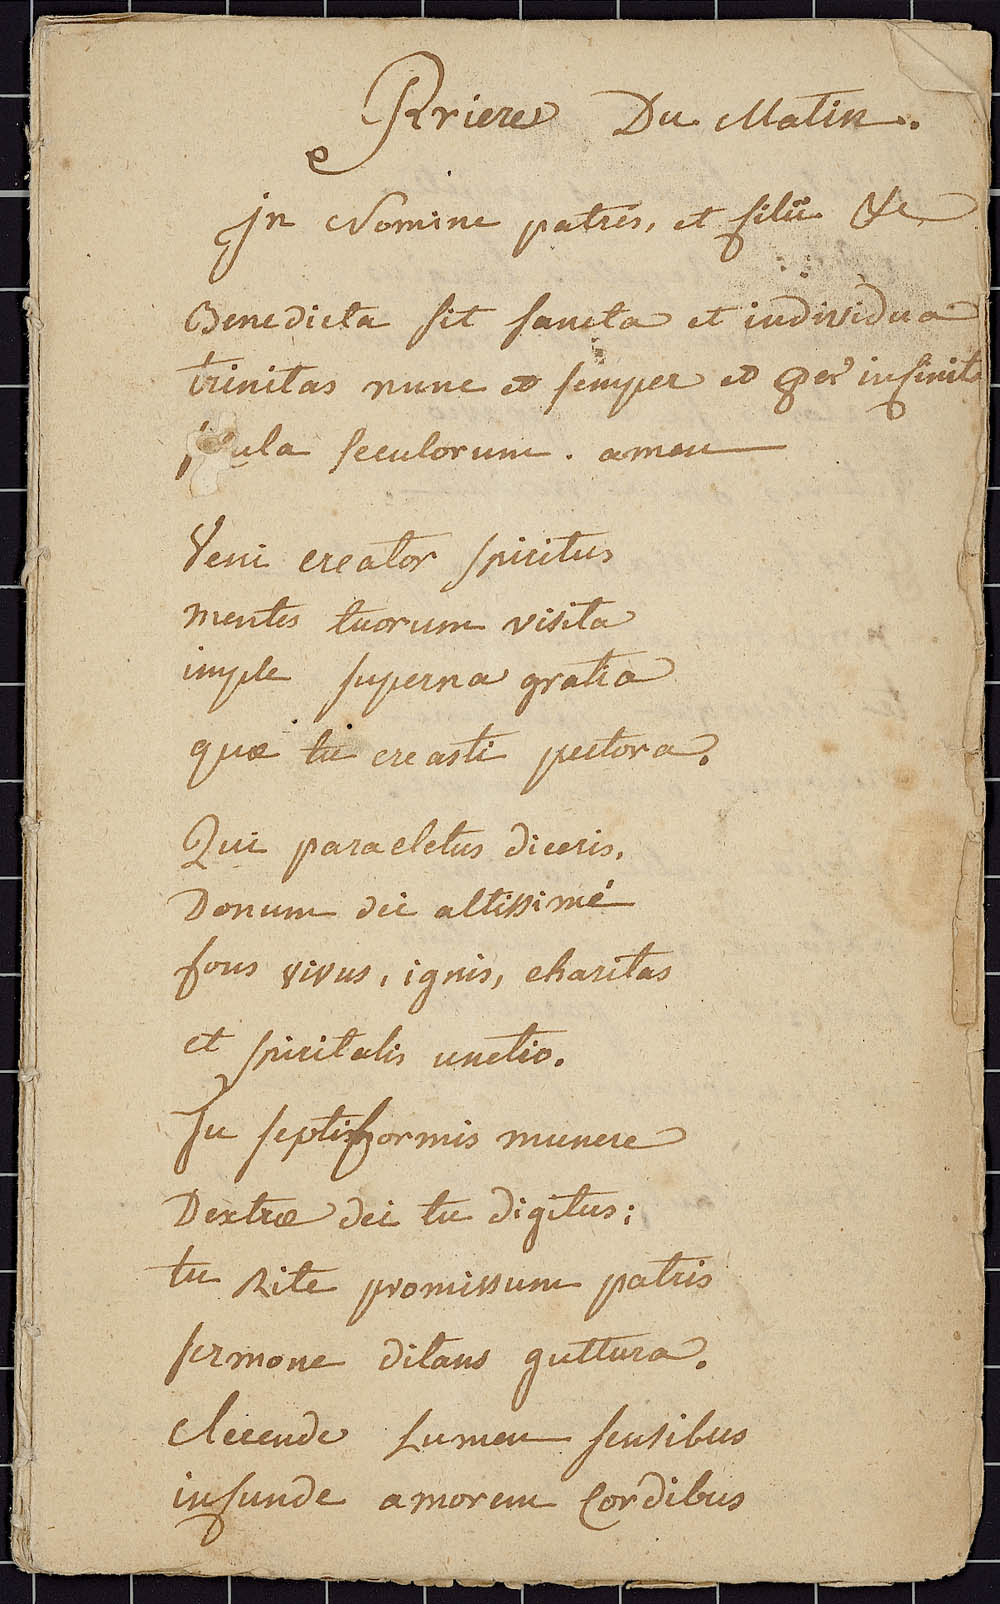 Prayer Book in Latin and French, by Jean-Pierre de Miniac, priest of the Compagnie de Saint-Sulpice, ca. 1724, CA ANC MG18-E22